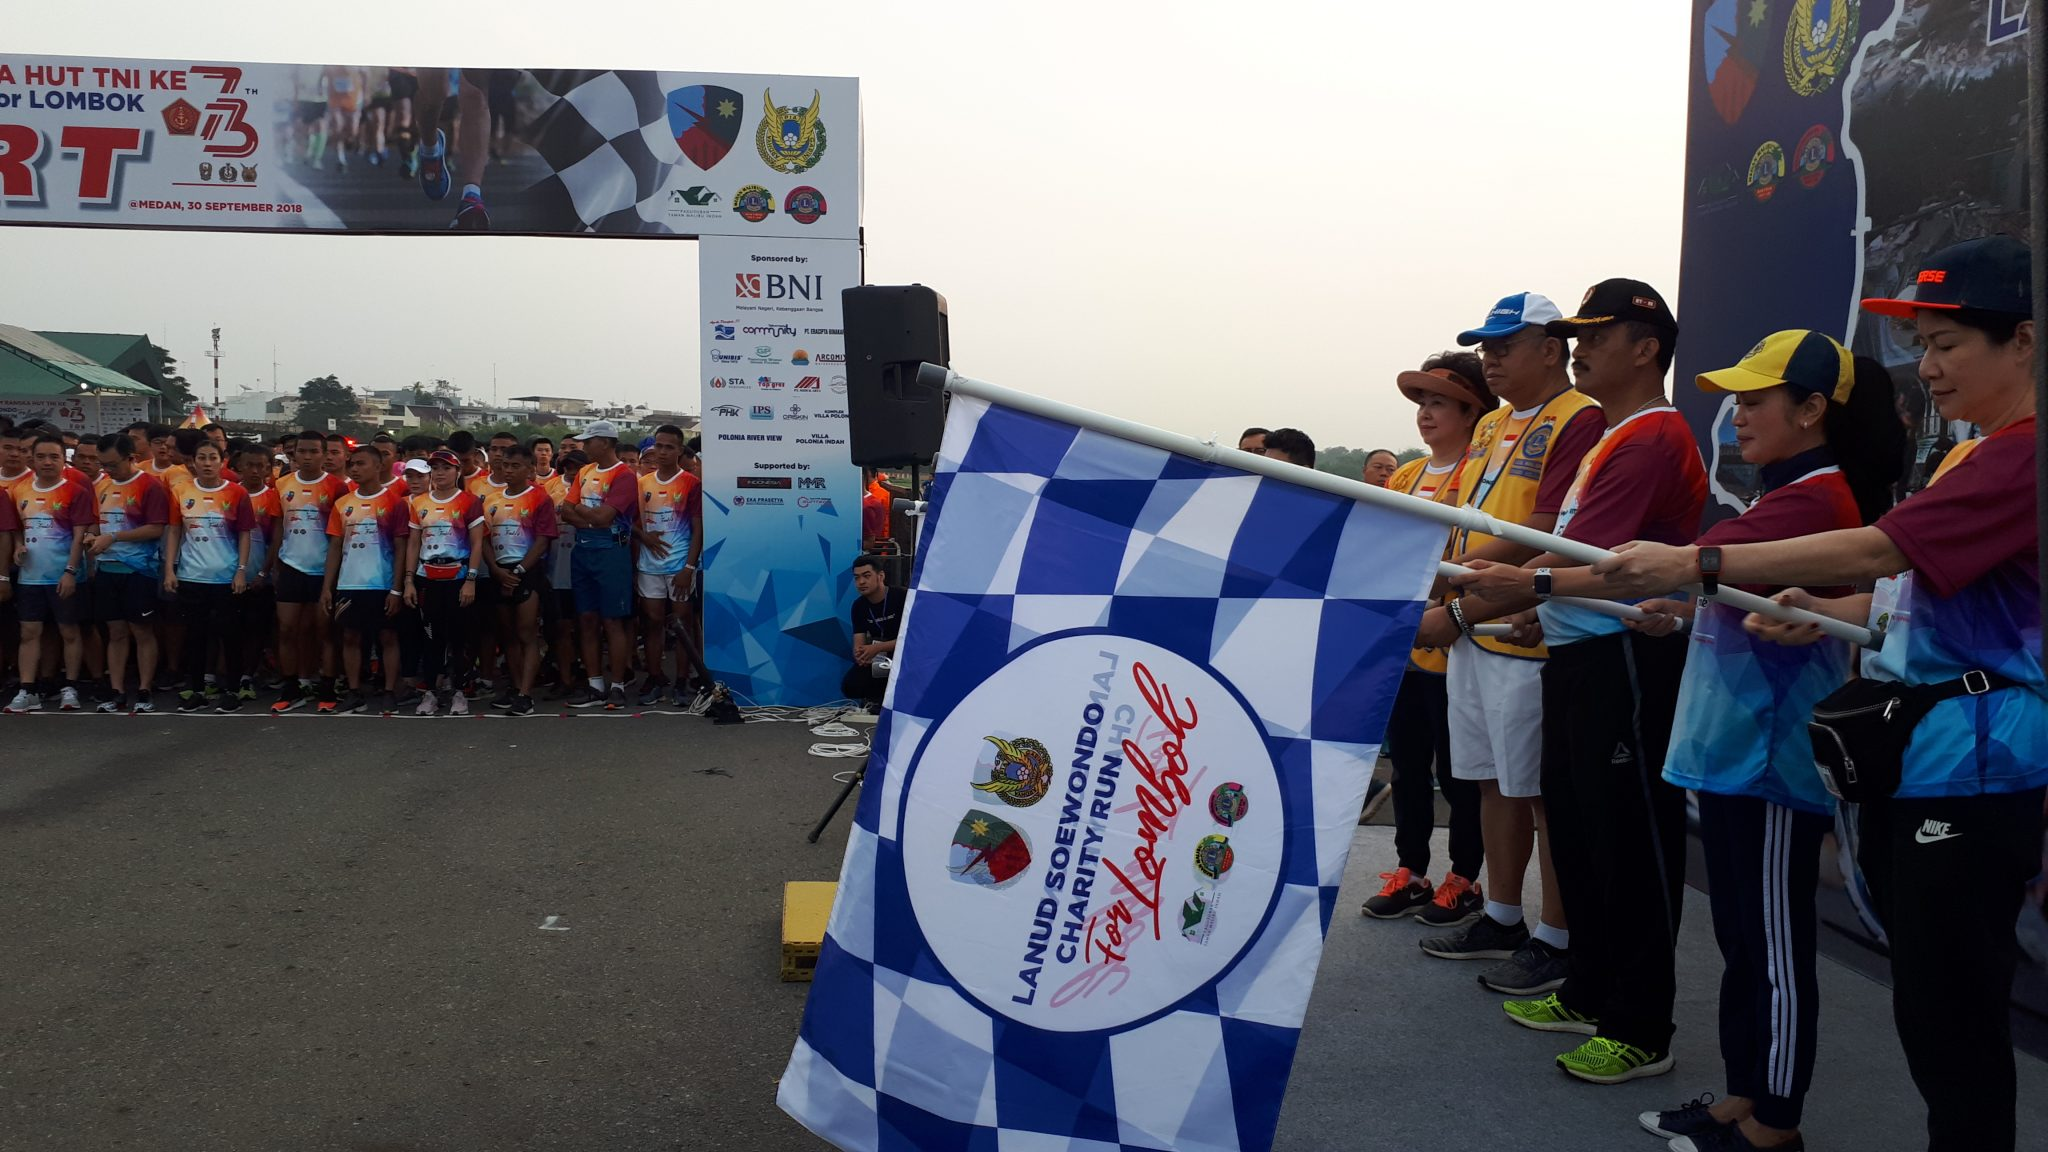 Lanud Soewondo Laksanakan Charity Run For Lombok